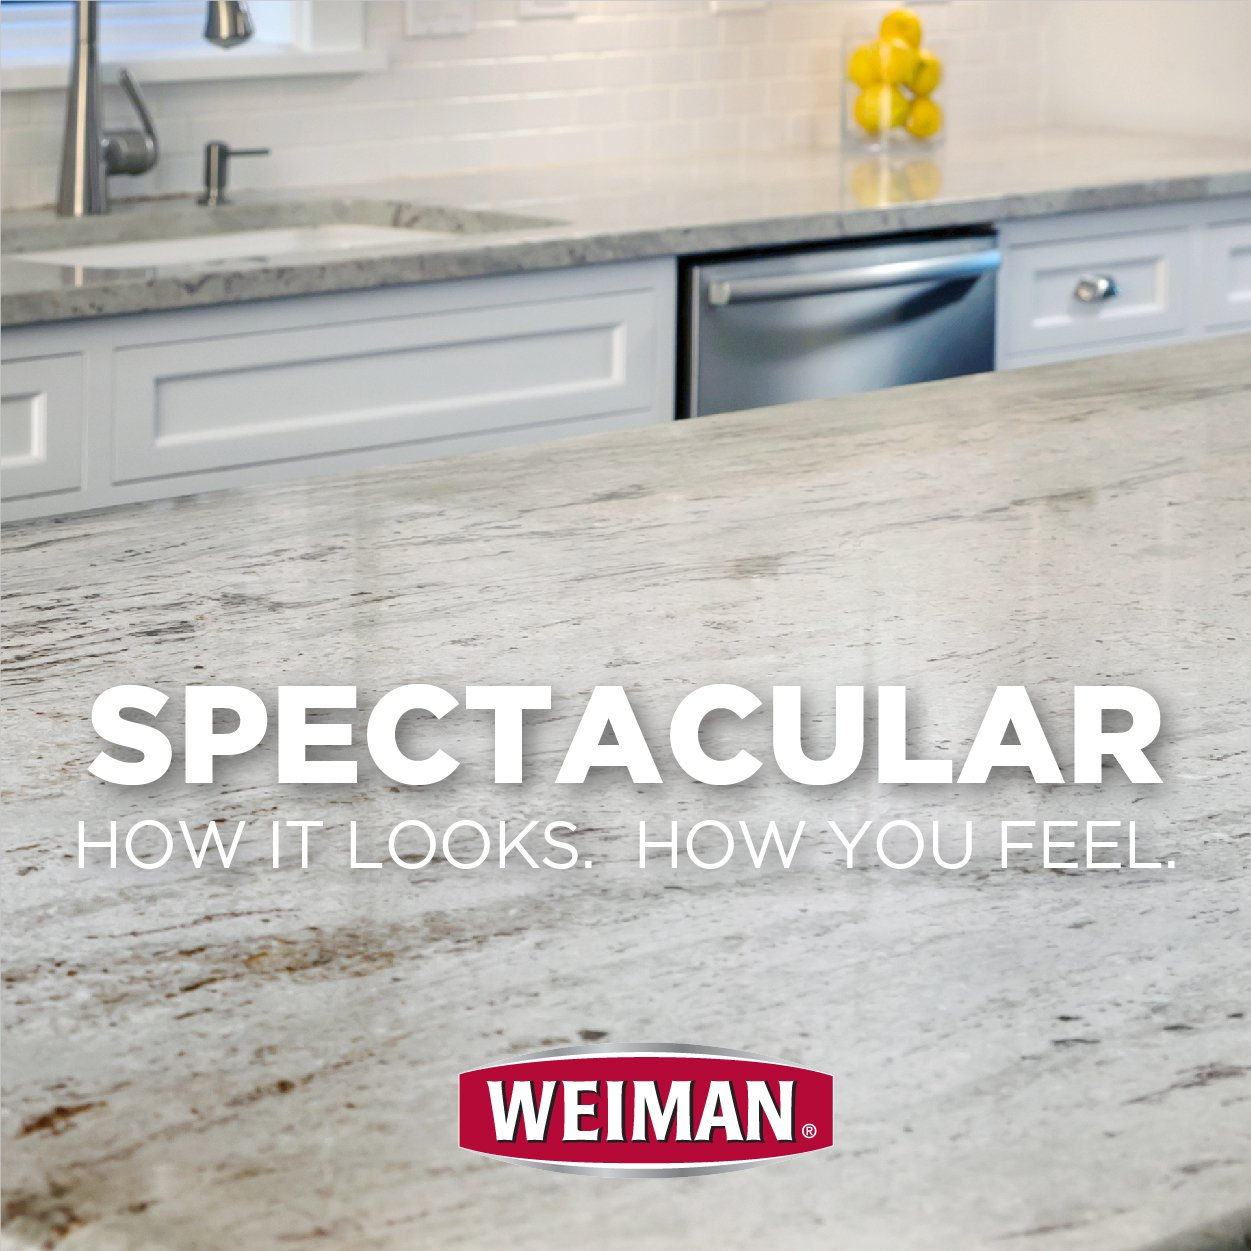 Weiman Granite Cleaner and Polish - 8 Ounce 6 Pack - For Granite Marble Soapstone Quartz Quartzite Slate Limestone Corian Laminate Tile Countertop and More by Weiman (Image #2)